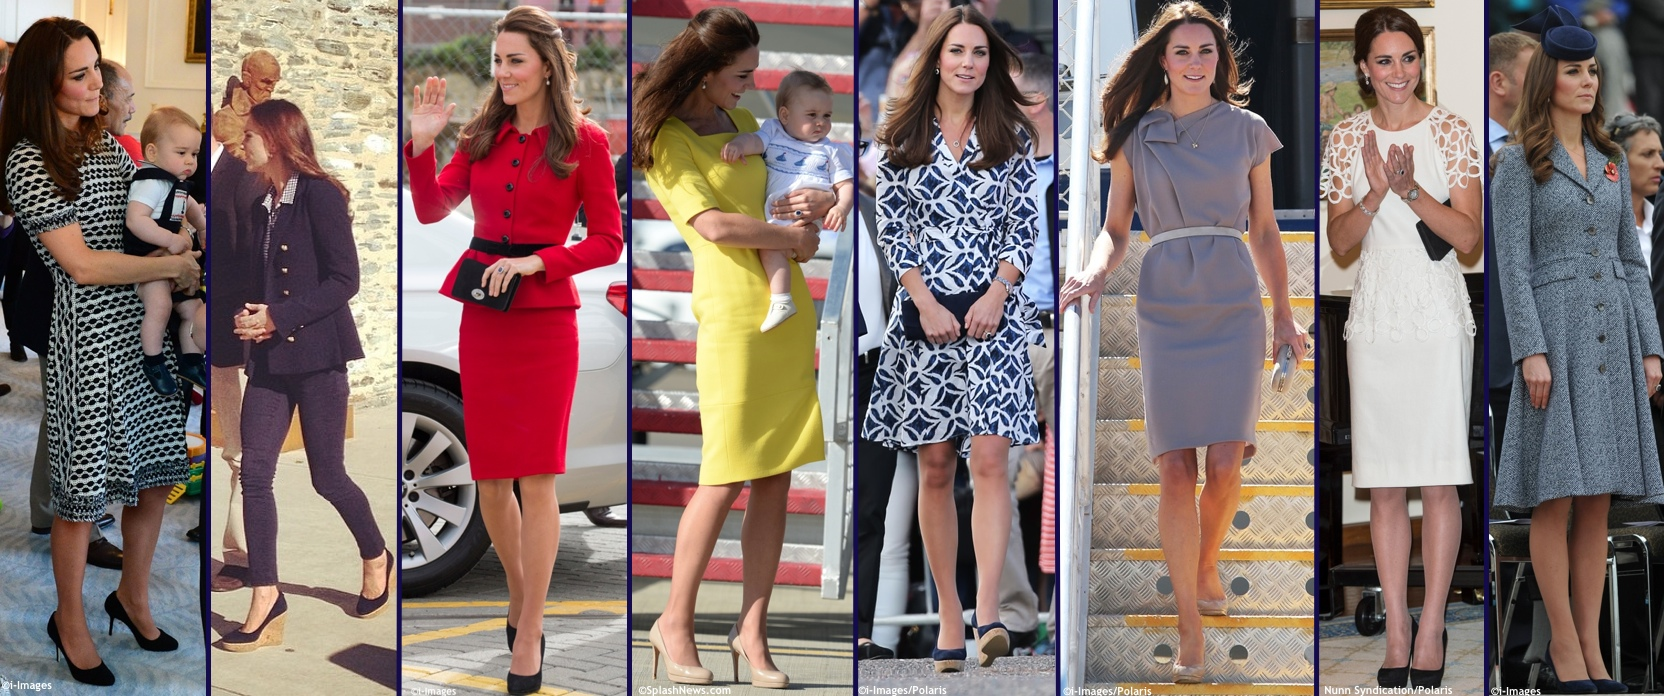 Royal Tour 2014 Wardrobe Overview Other Collage Minus Max Mara MaxMara Wrap Dress Sydney